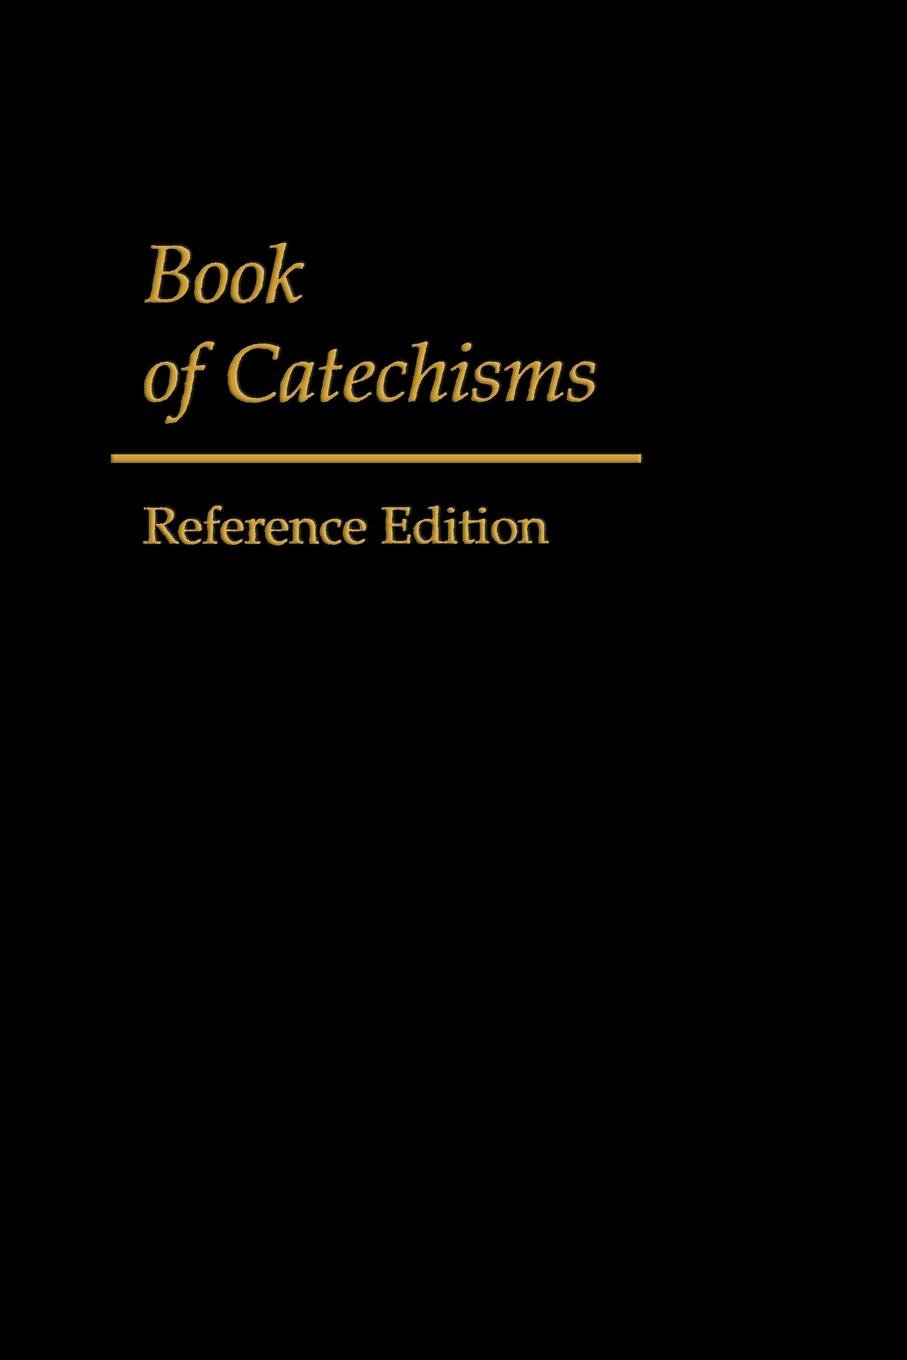 Book of Catechisms: Reference Edition pdf